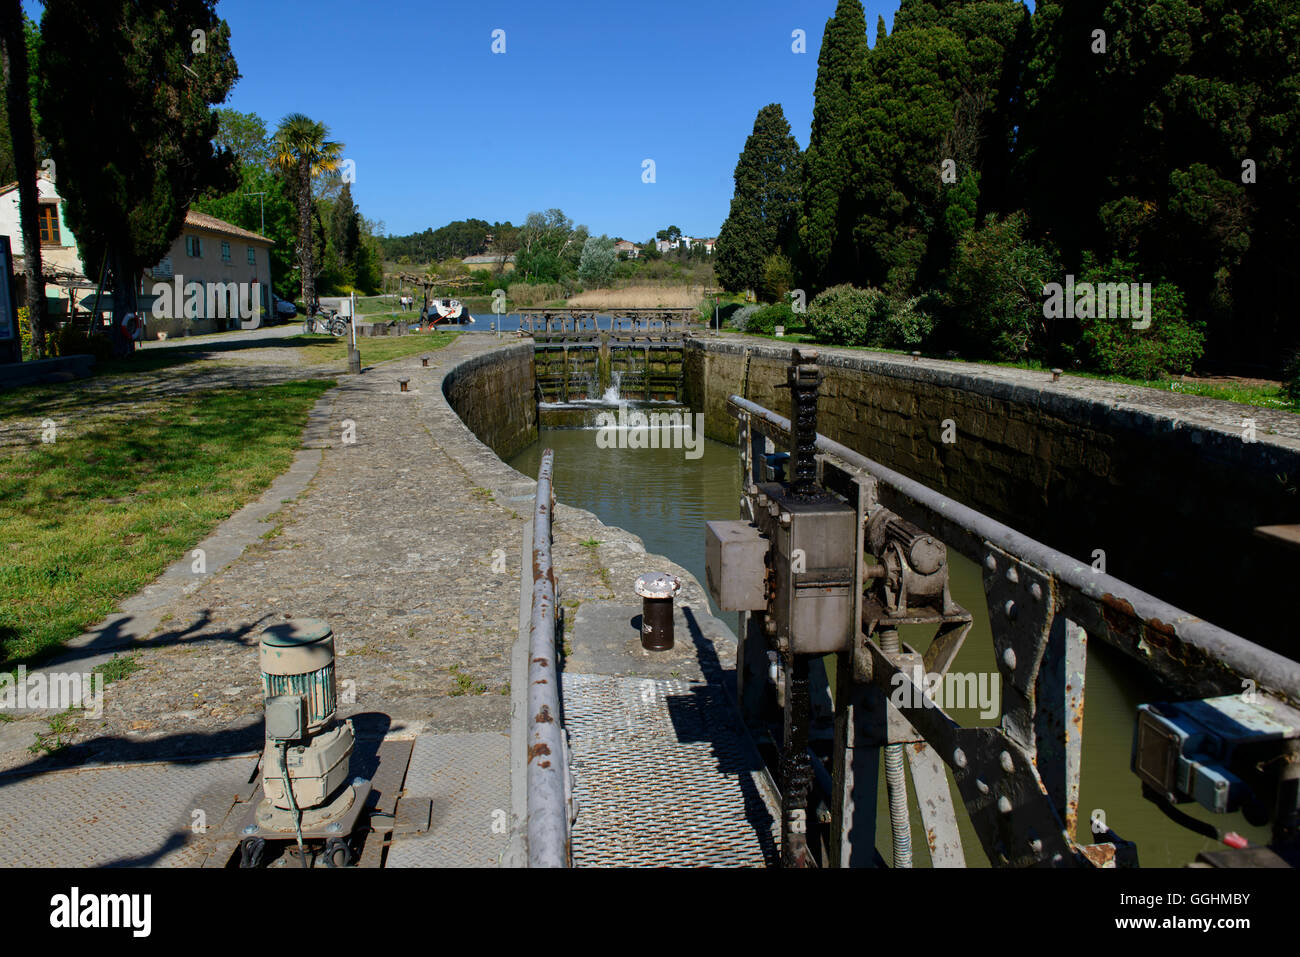 A sluice in the Canal du Midi, near Carcassone, France - Stock Image